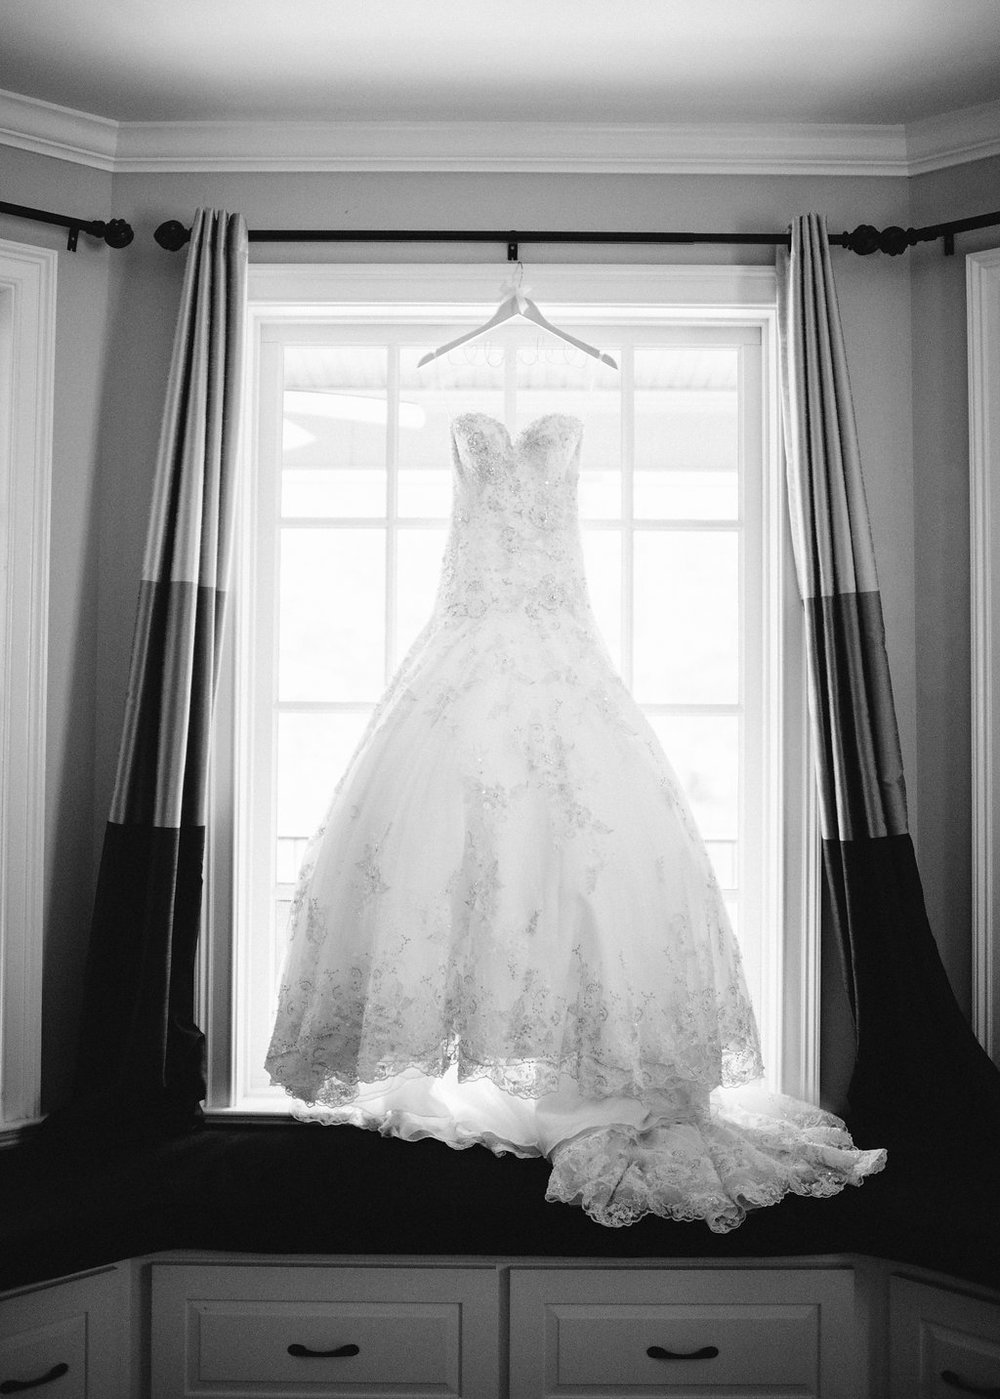 house-of-the-bride-wedding-dress-greg-boulus-events-augusta-georgia